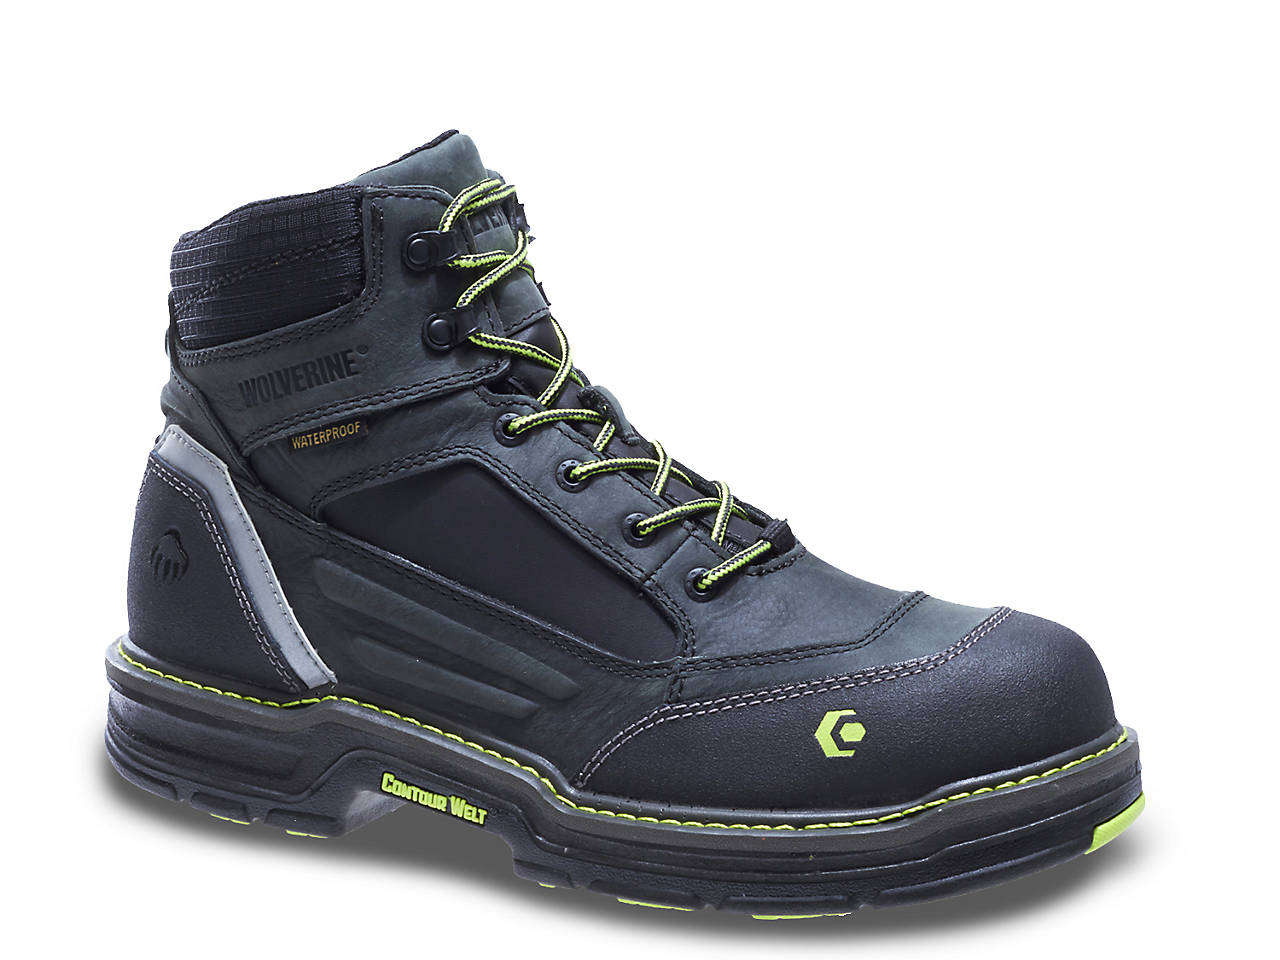 dbabc9205a9 Overman Work Boot